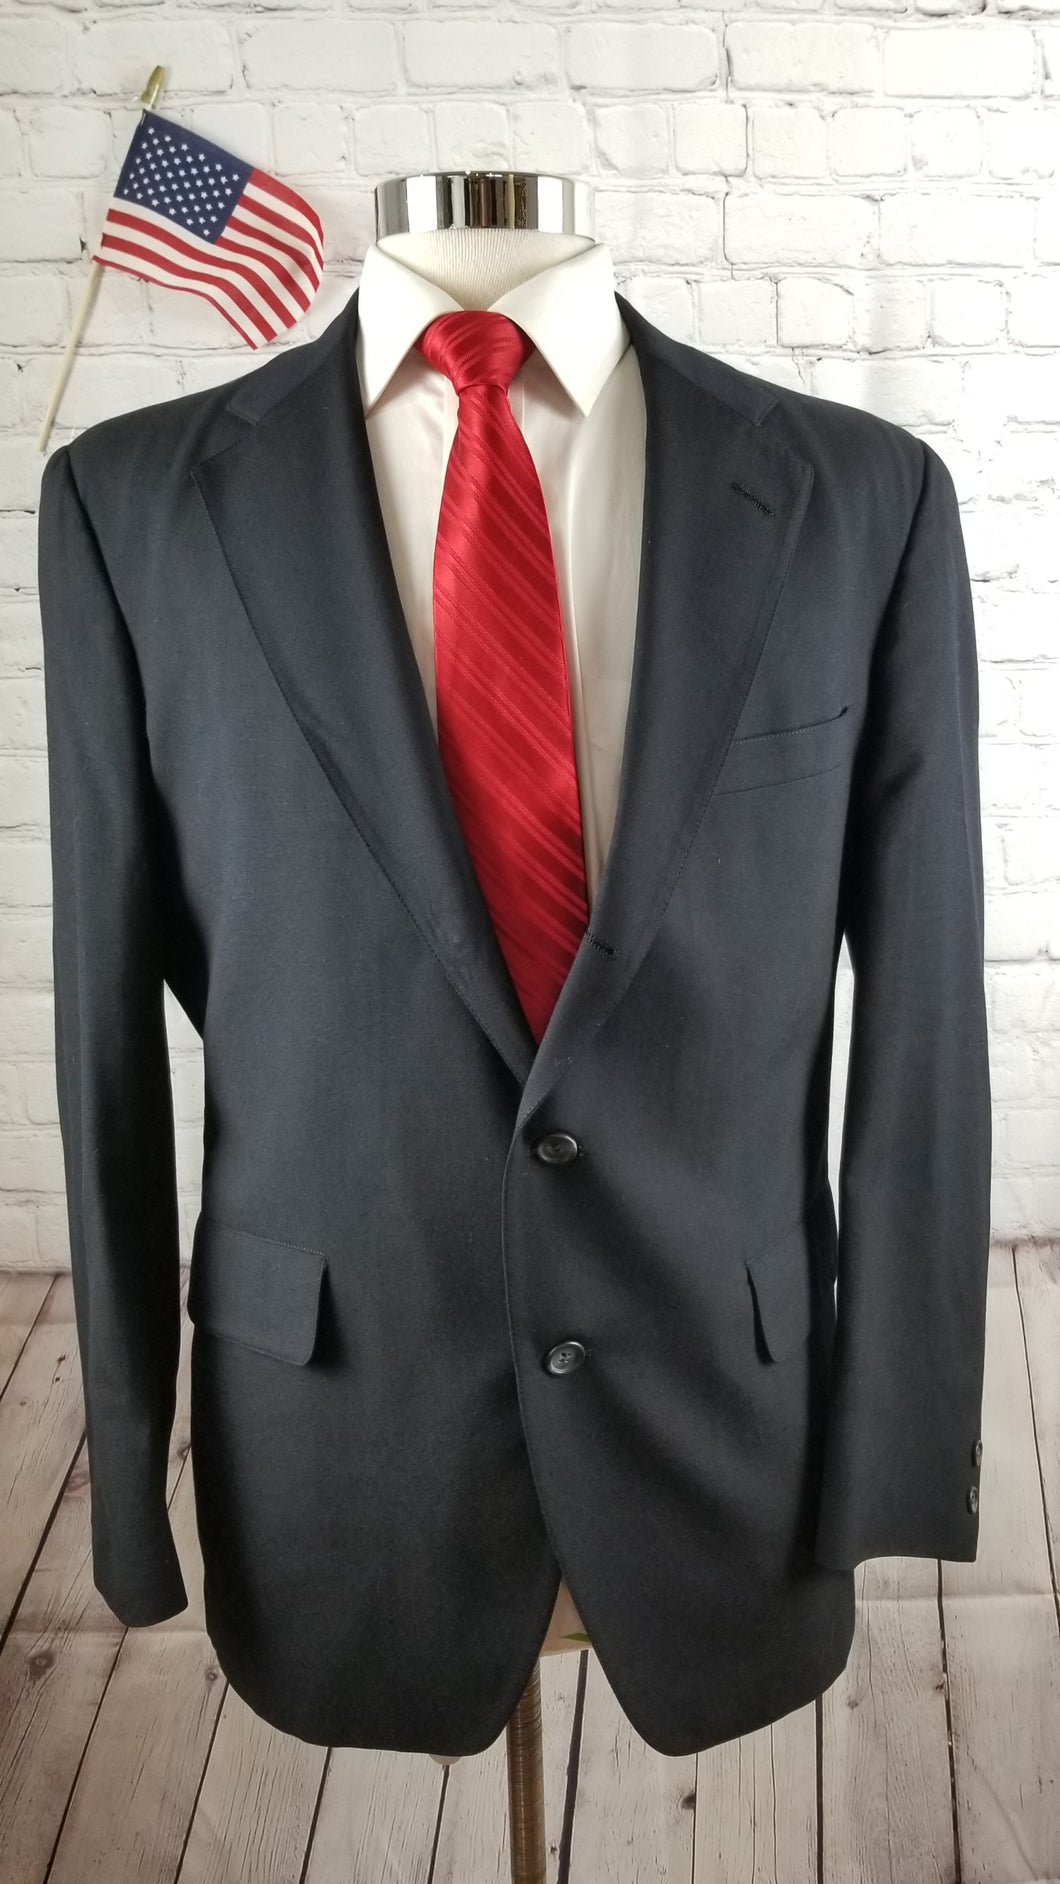 Jos A. Bank Navy Blue Solid Suit Jacket 42R $538 - SUIT CHARITY OUTLET